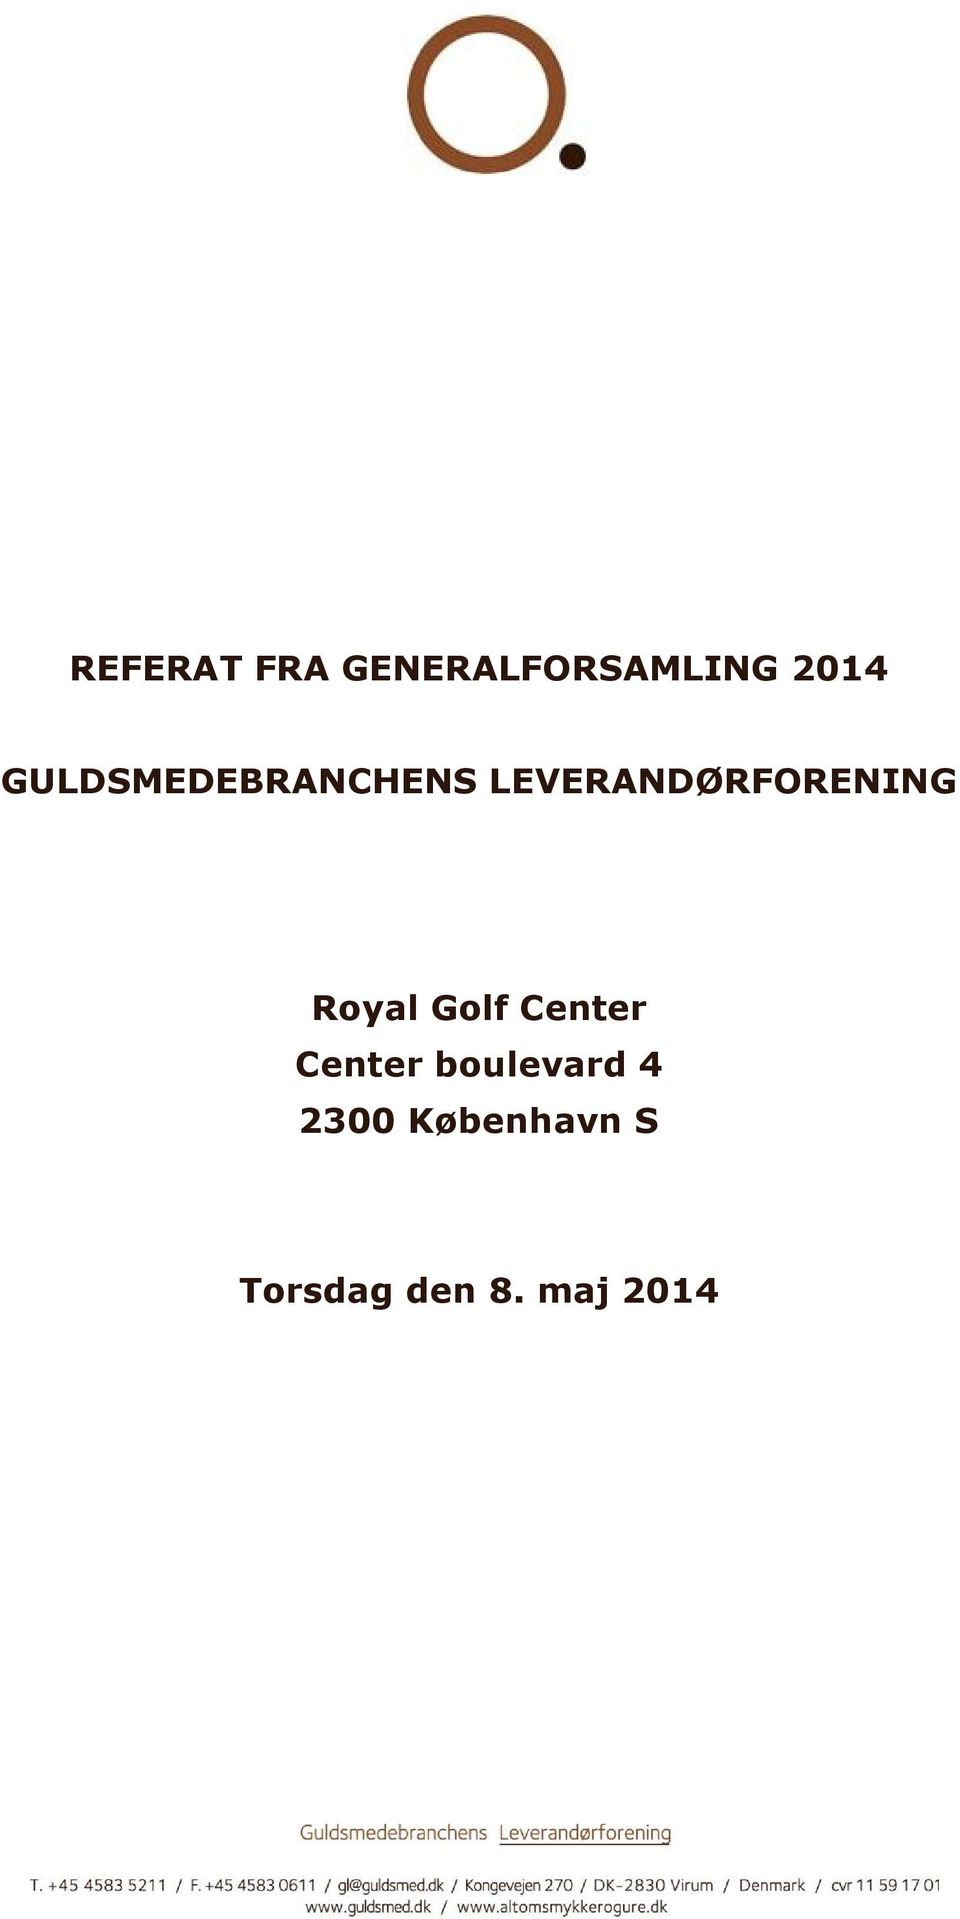 Royal Golf Center Center boulevard 4